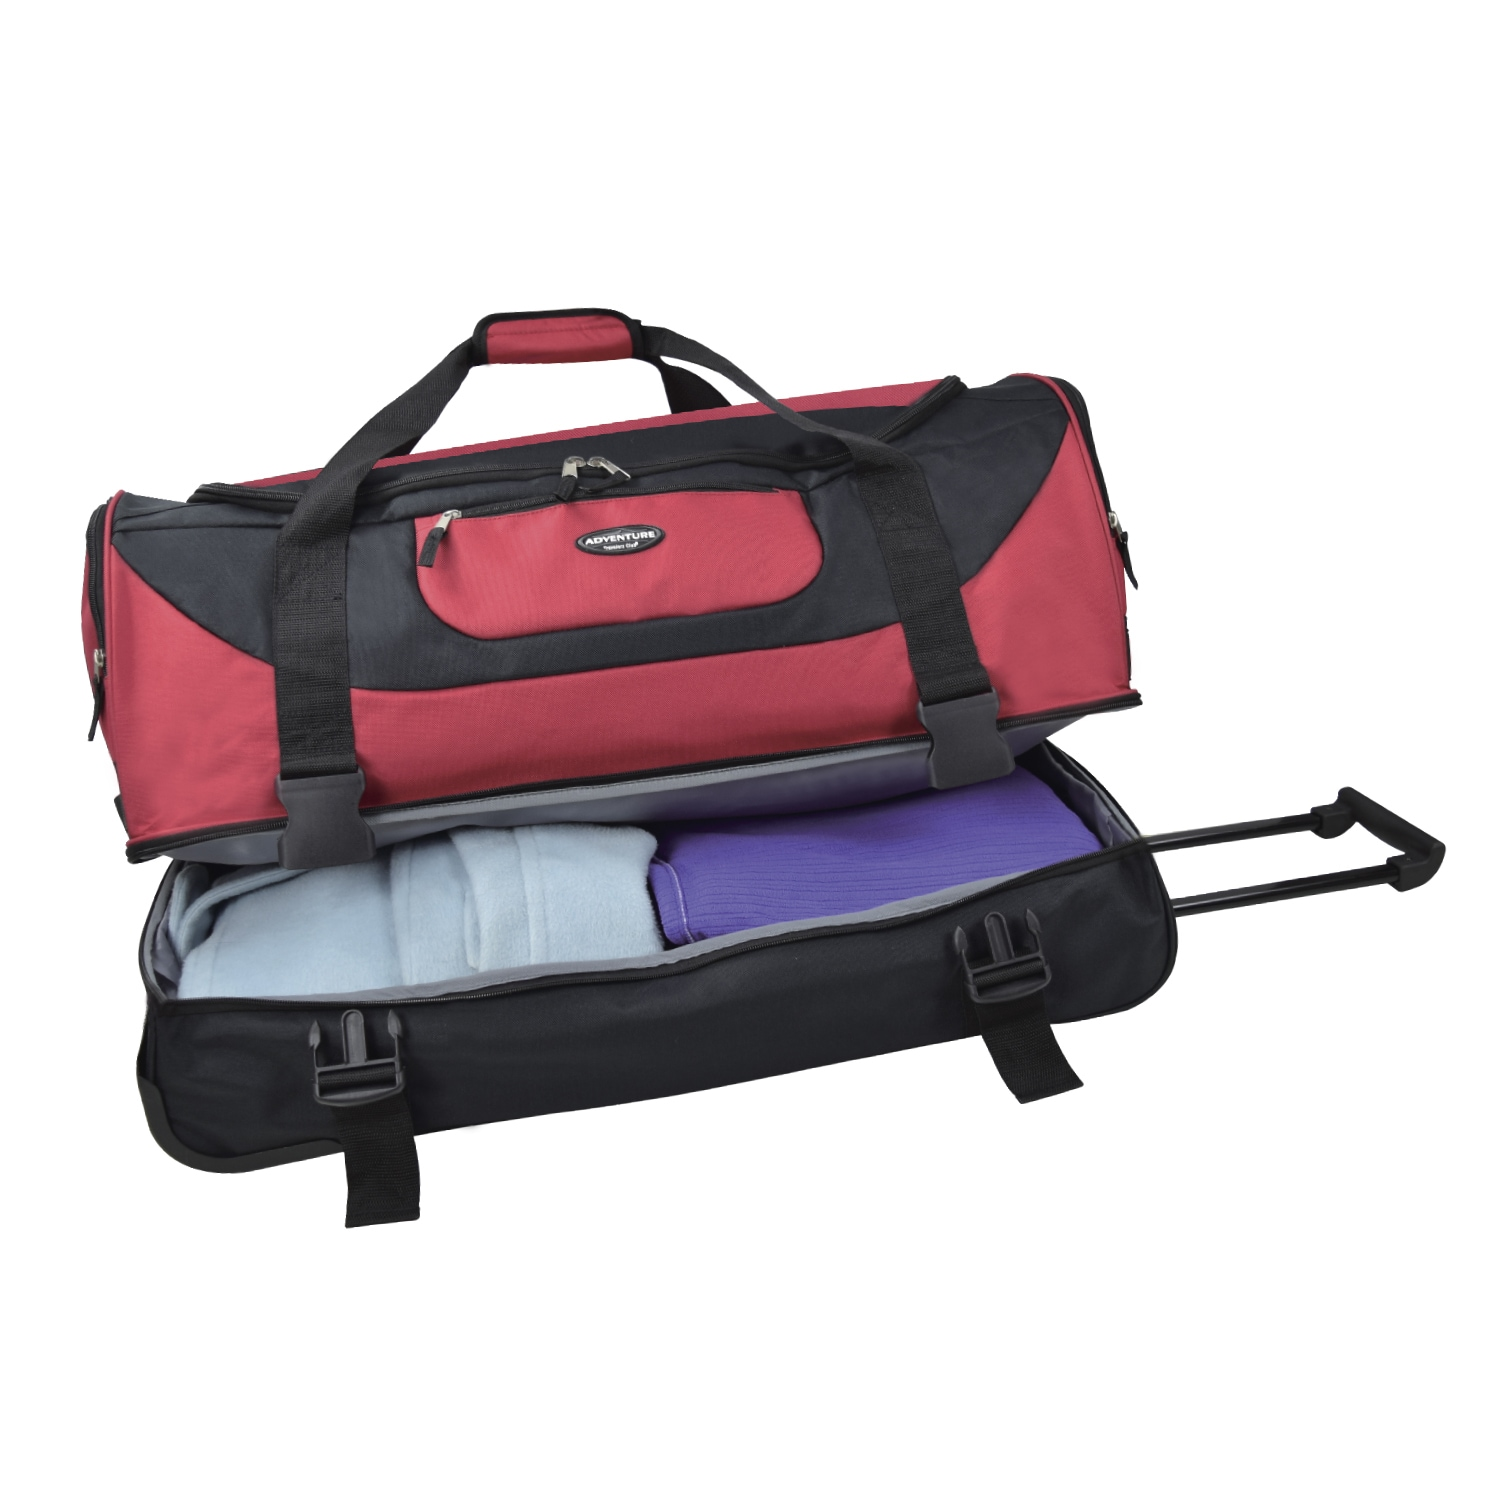 ac8681da7a Shop Traveler s Club Adventure 30-inch 2-Section Drop-Bottom Rolling Duffel  Bag - Free Shipping On Orders Over  45 - Overstock - 10422288